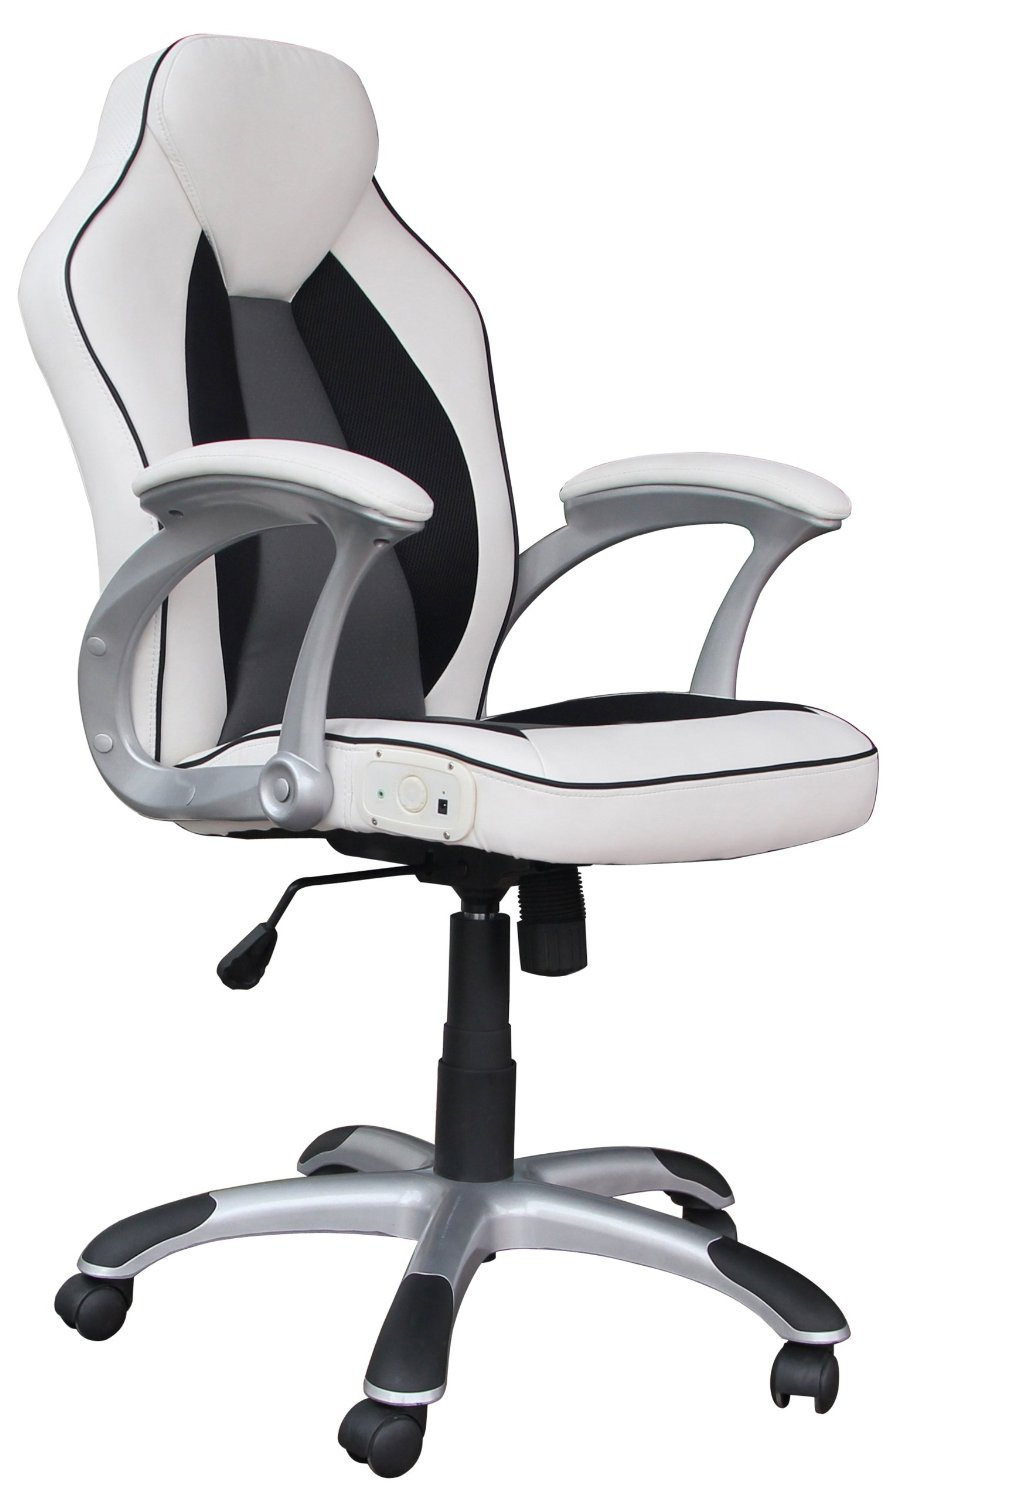 Image Result For Gaming Chair You Can Sleep In